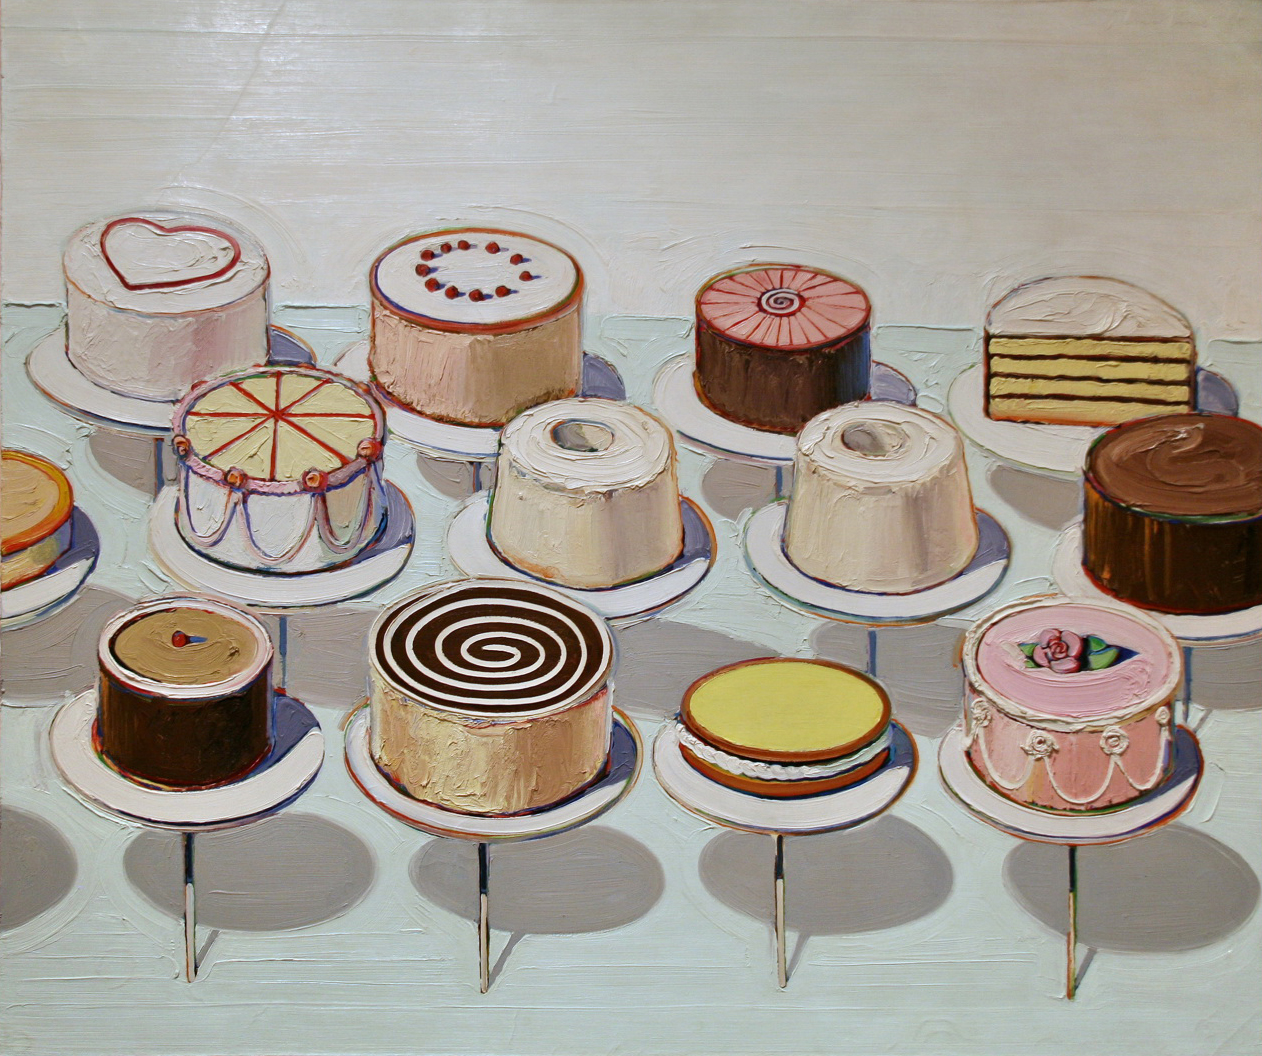 Wayne Thiebaud Net Worth